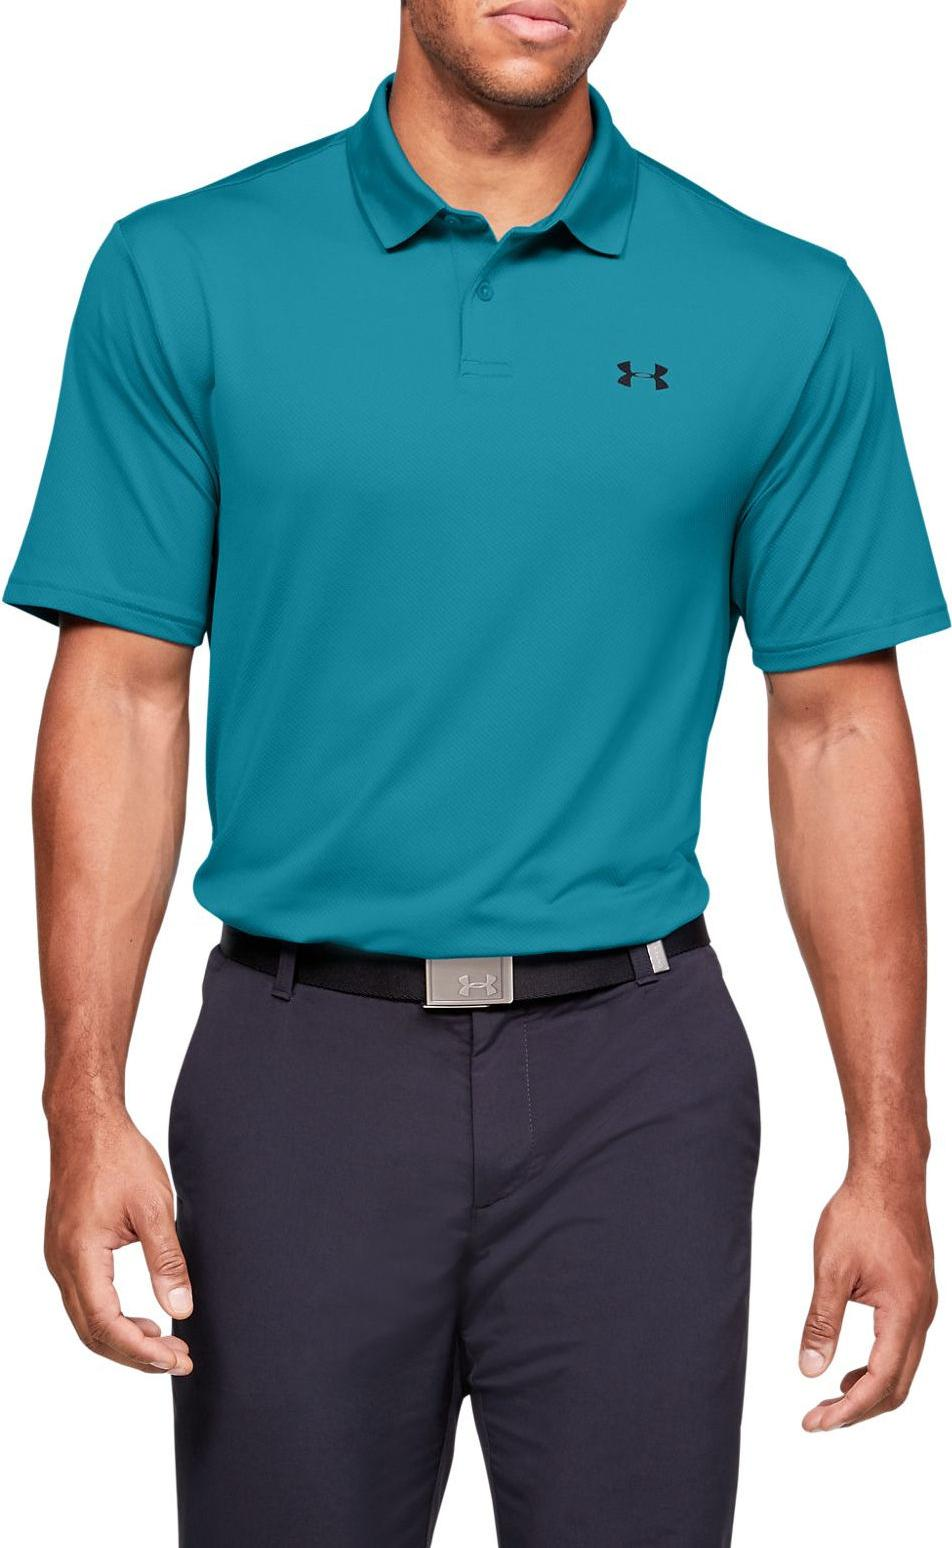 Polokošele Under Armour Performance Polo 2.0